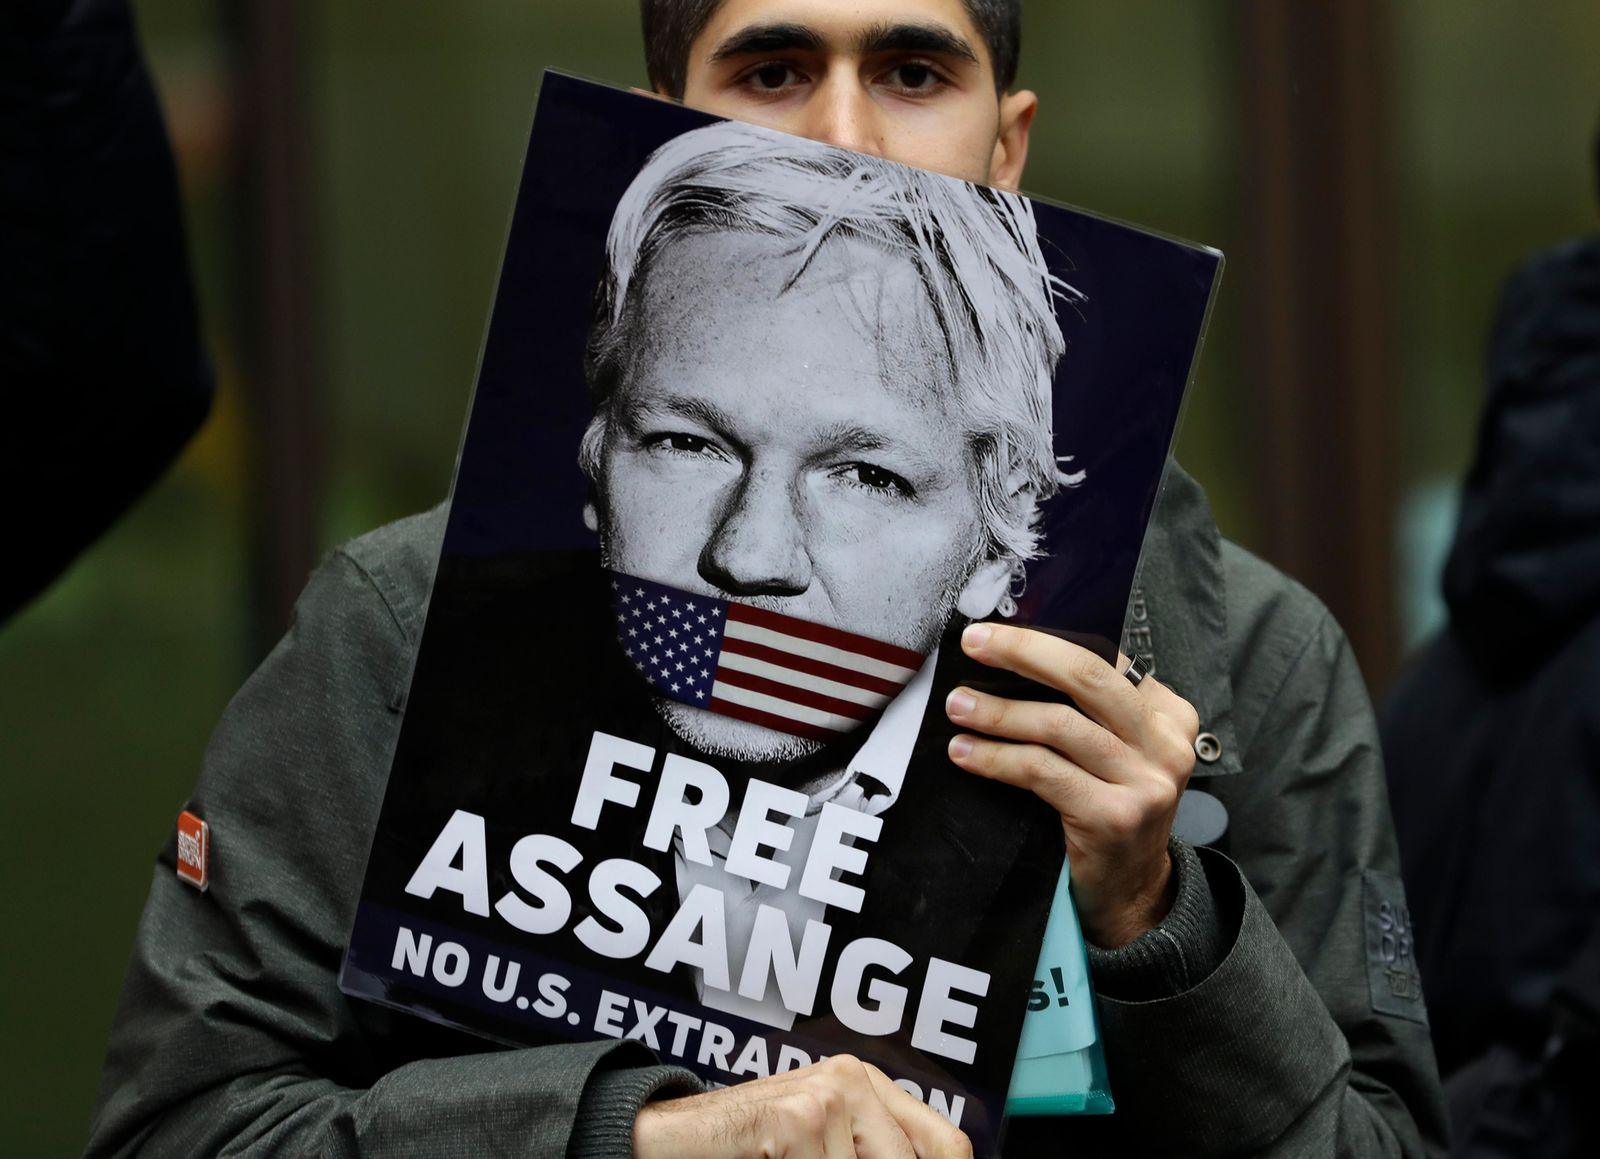 Supporters of Wikileaks founder Julian Assange demonstrate outside Westminster Magistrates' Court in London where Assange is expected to appear as he fights extradition to the United States on charges of conspiring to hack into a Pentagon computer, in London, Monday Oct. 21, 2019. (AP Photo/Kirsty Wigglesworth)